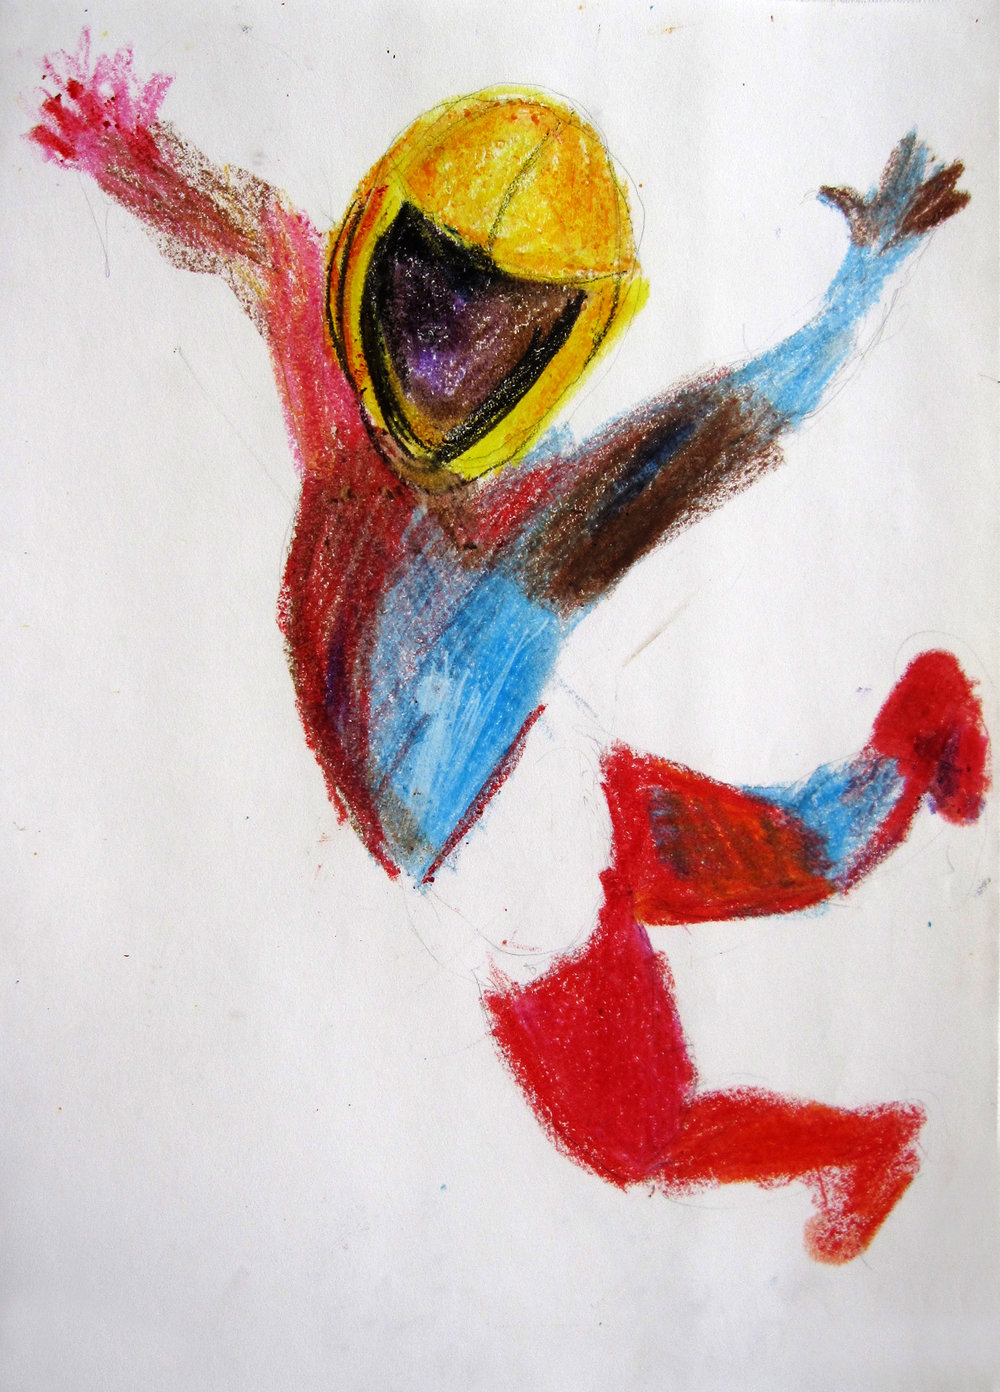 Lucha 10, 2008, Crayon on paper, 14 X11 in.